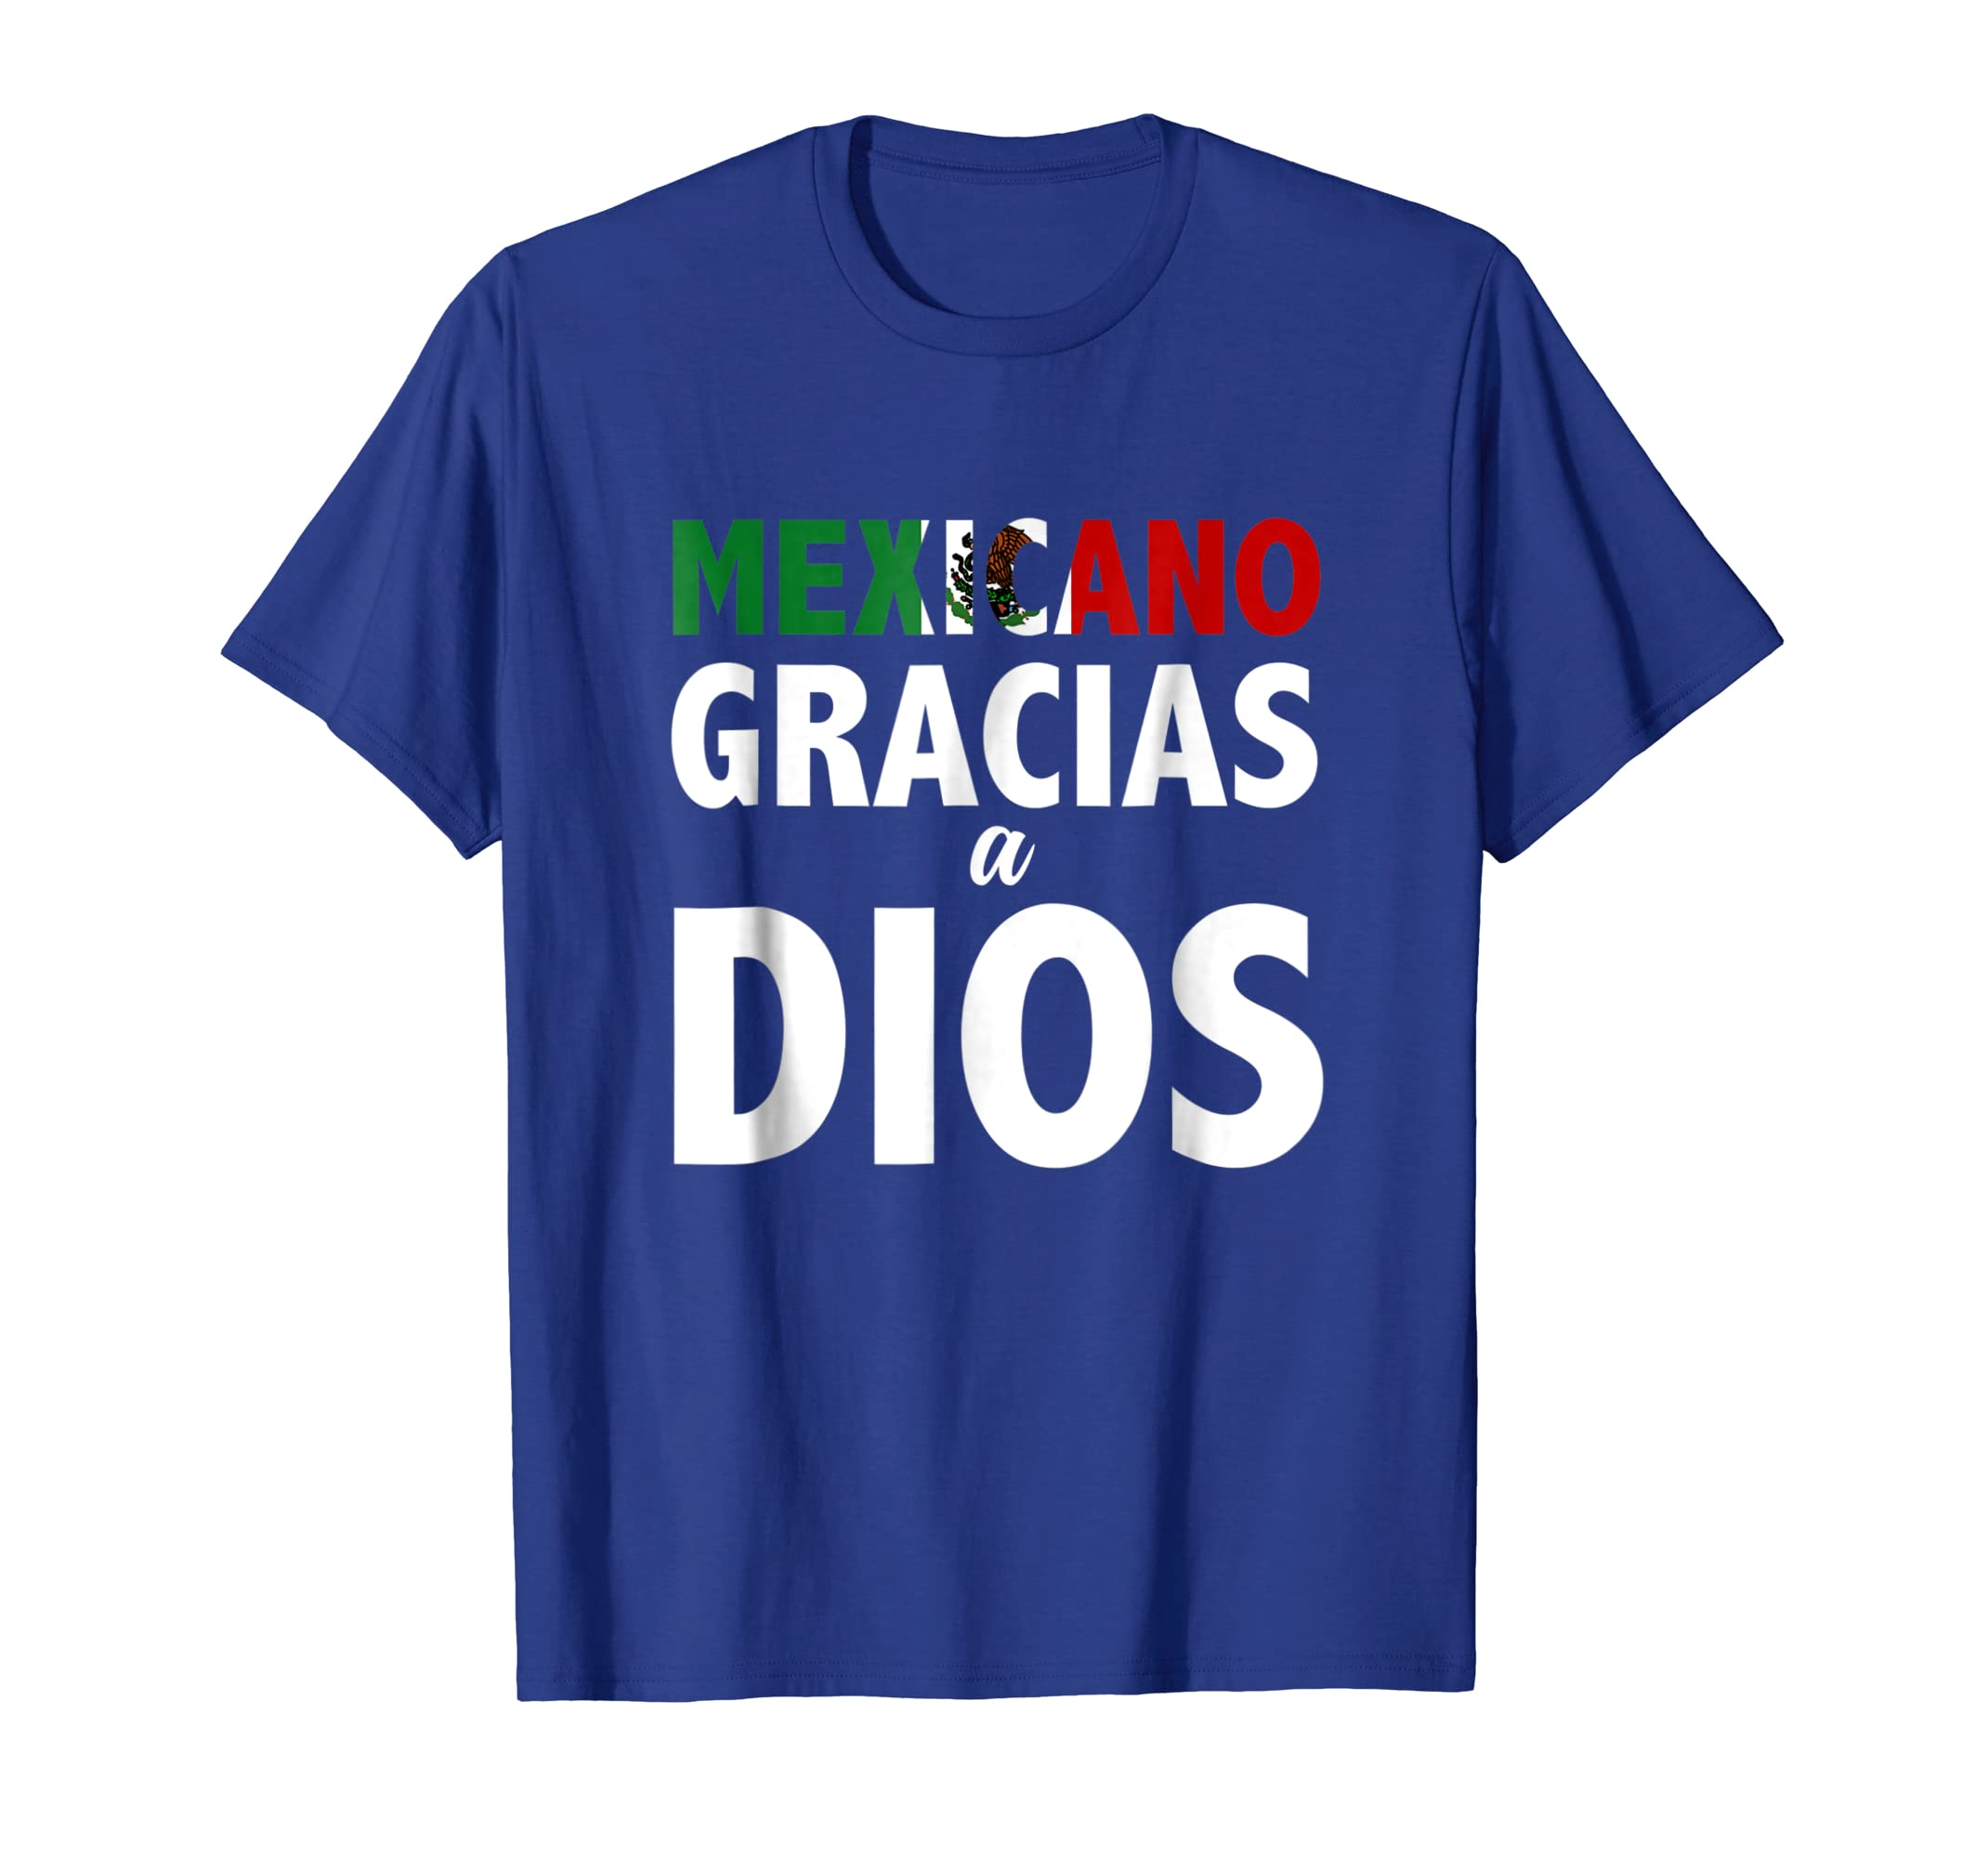 Amazon.com: Playeras Mexico Mexicano Gracias a Dios Camisetas Cristianas: Clothing